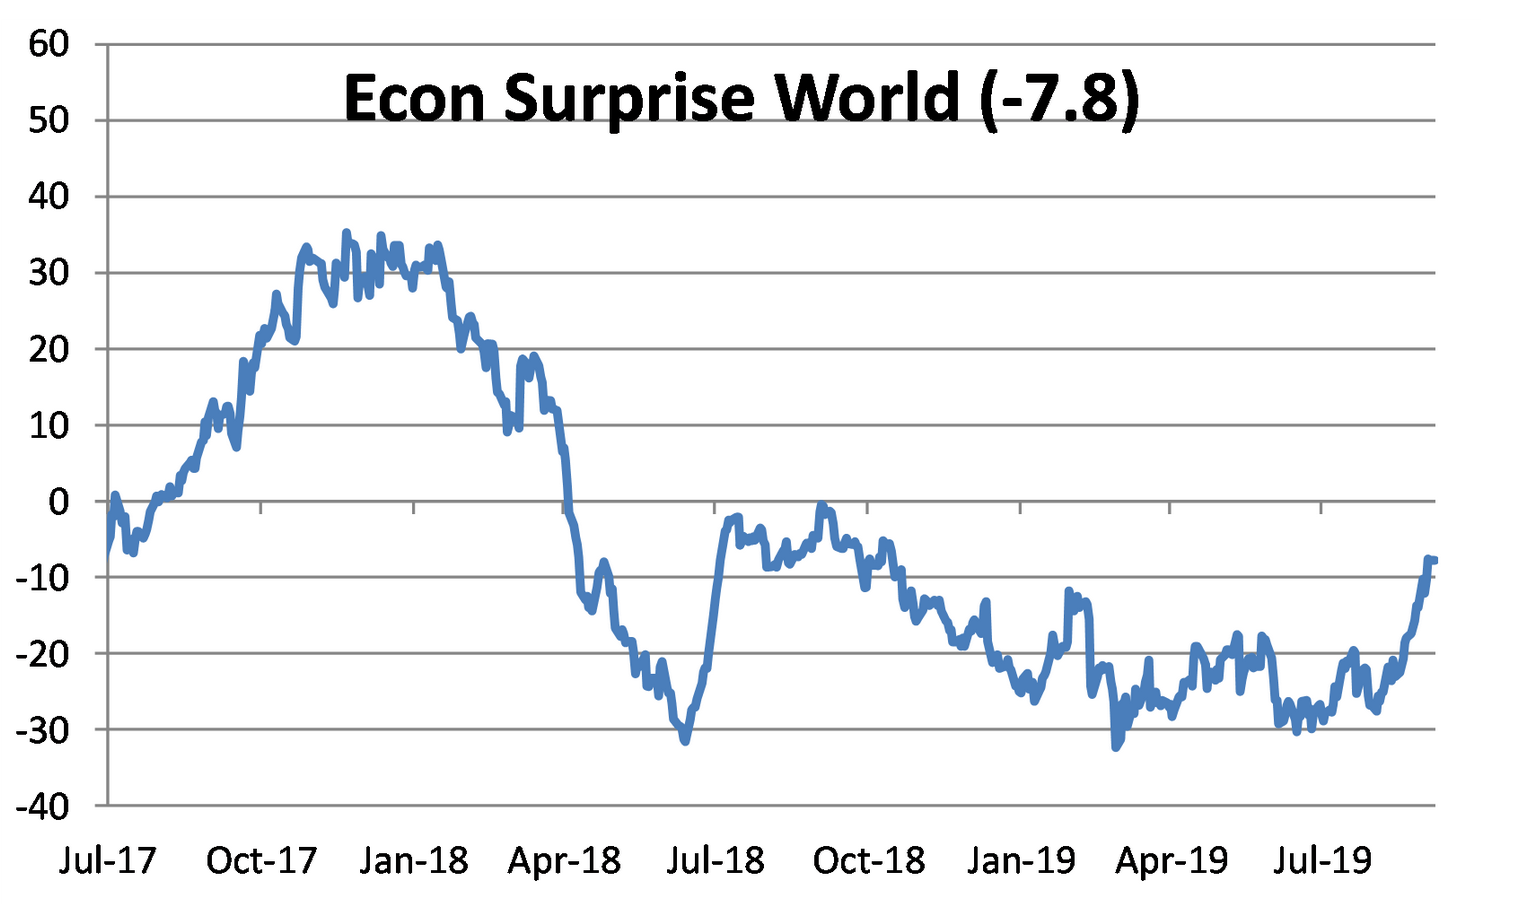 Global economic surprise index at highest level of the year